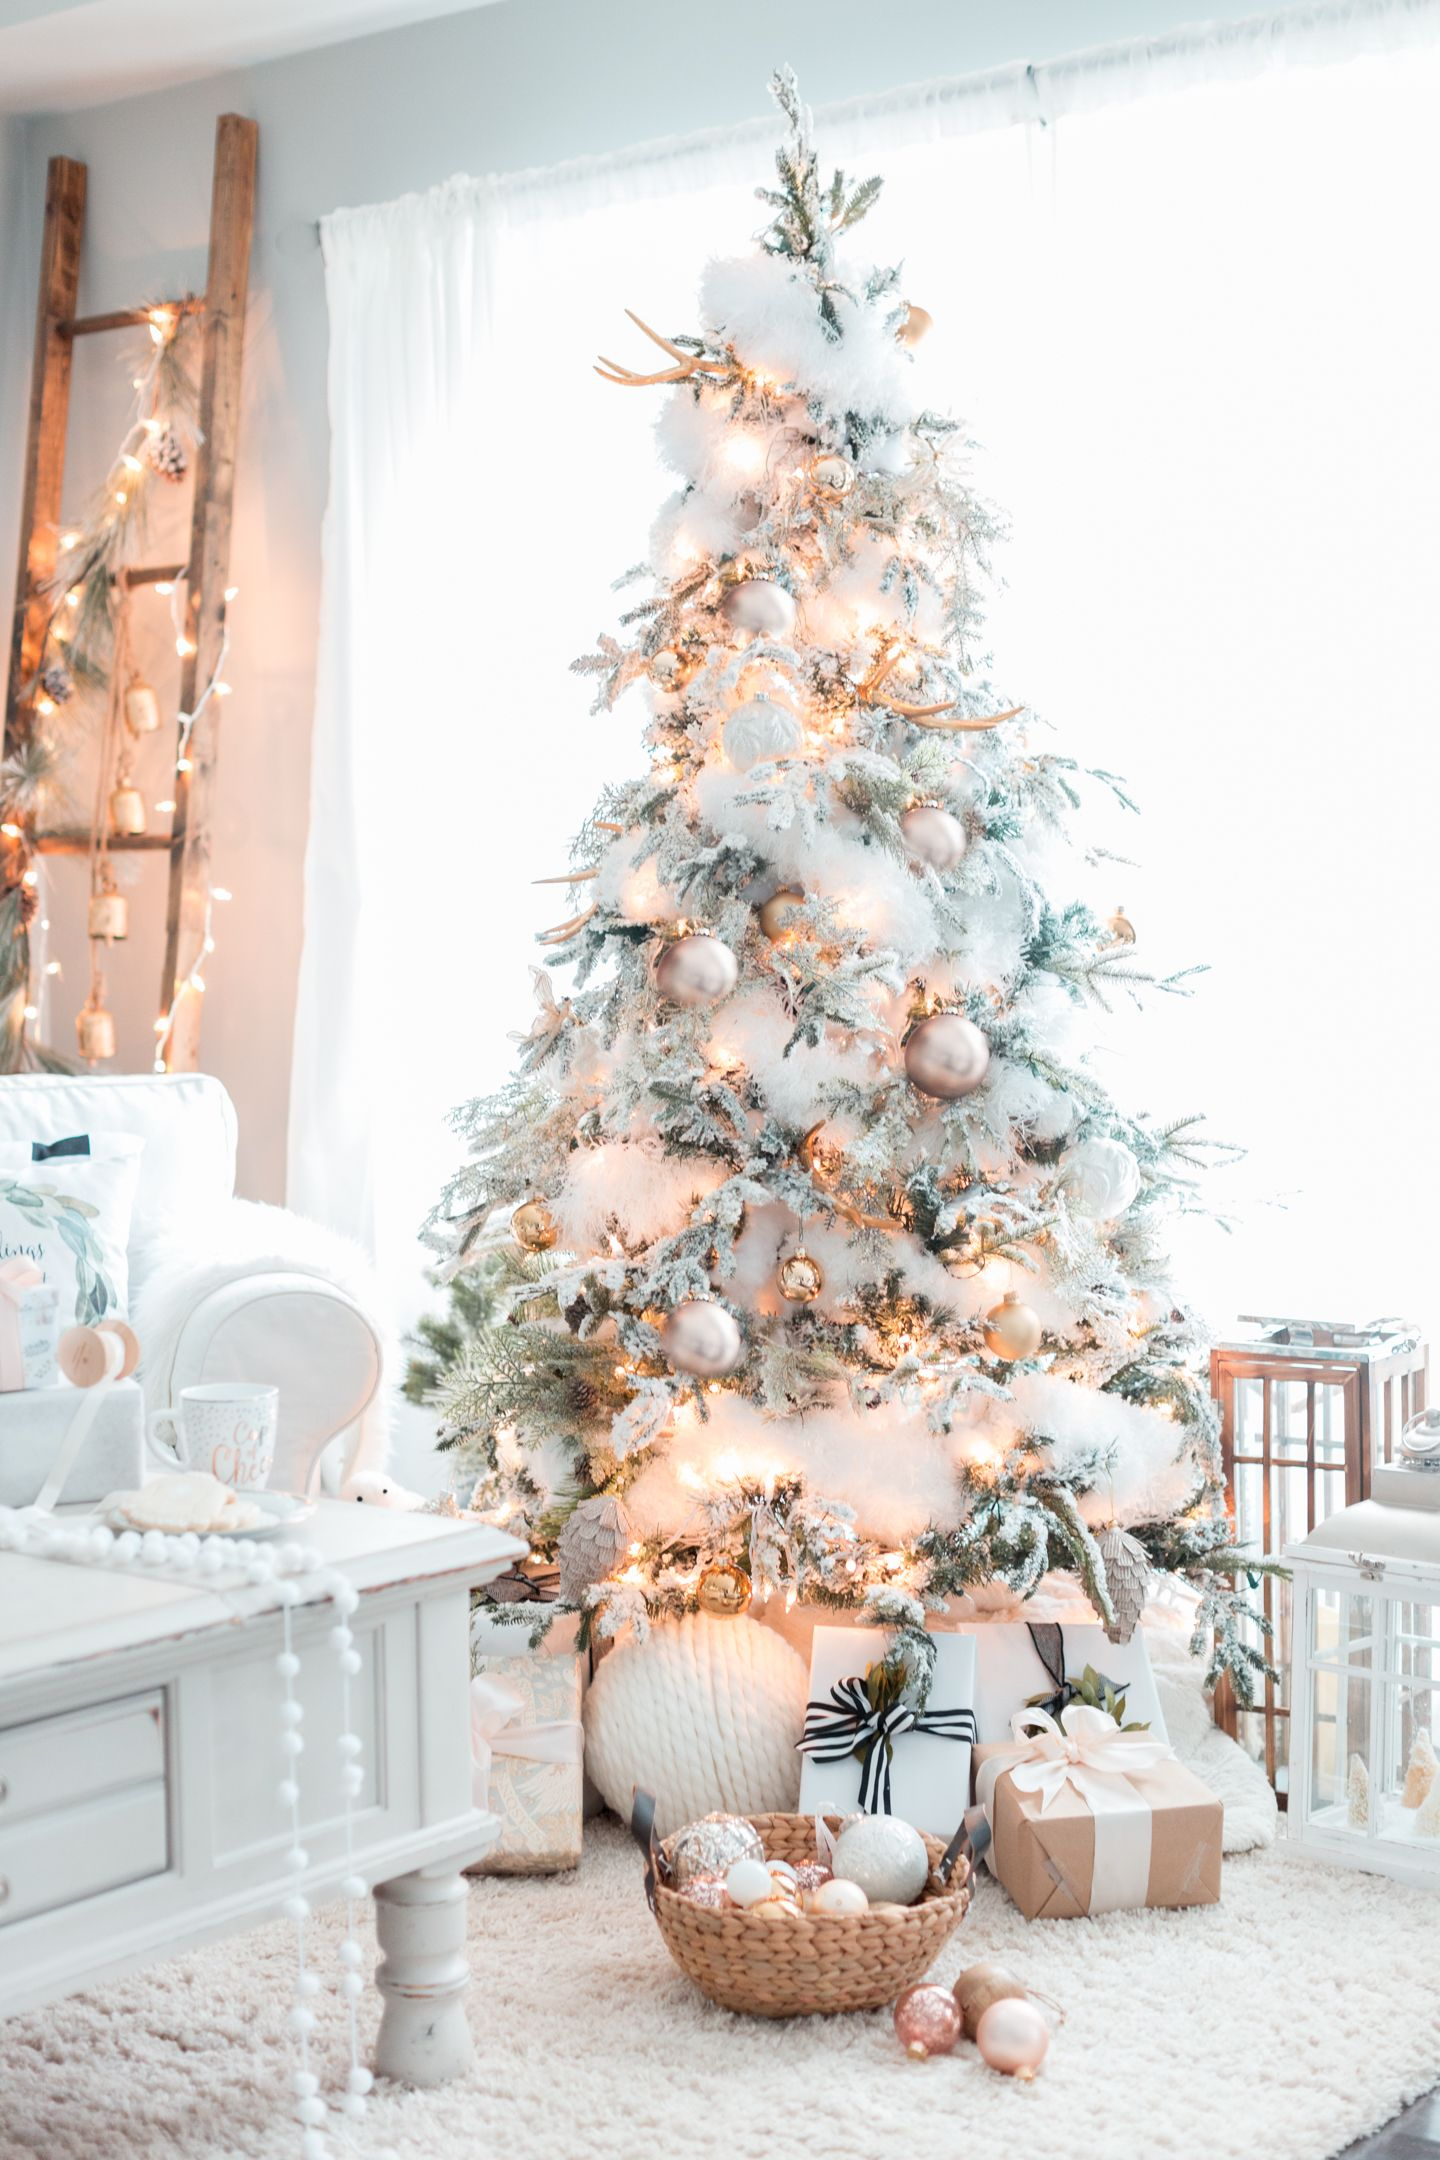 Make Your Home A Winter Wonderland Just In Time For The Festive Season With Help F White Christmas Decor White Christmas Tree Decorations White Christmas Trees